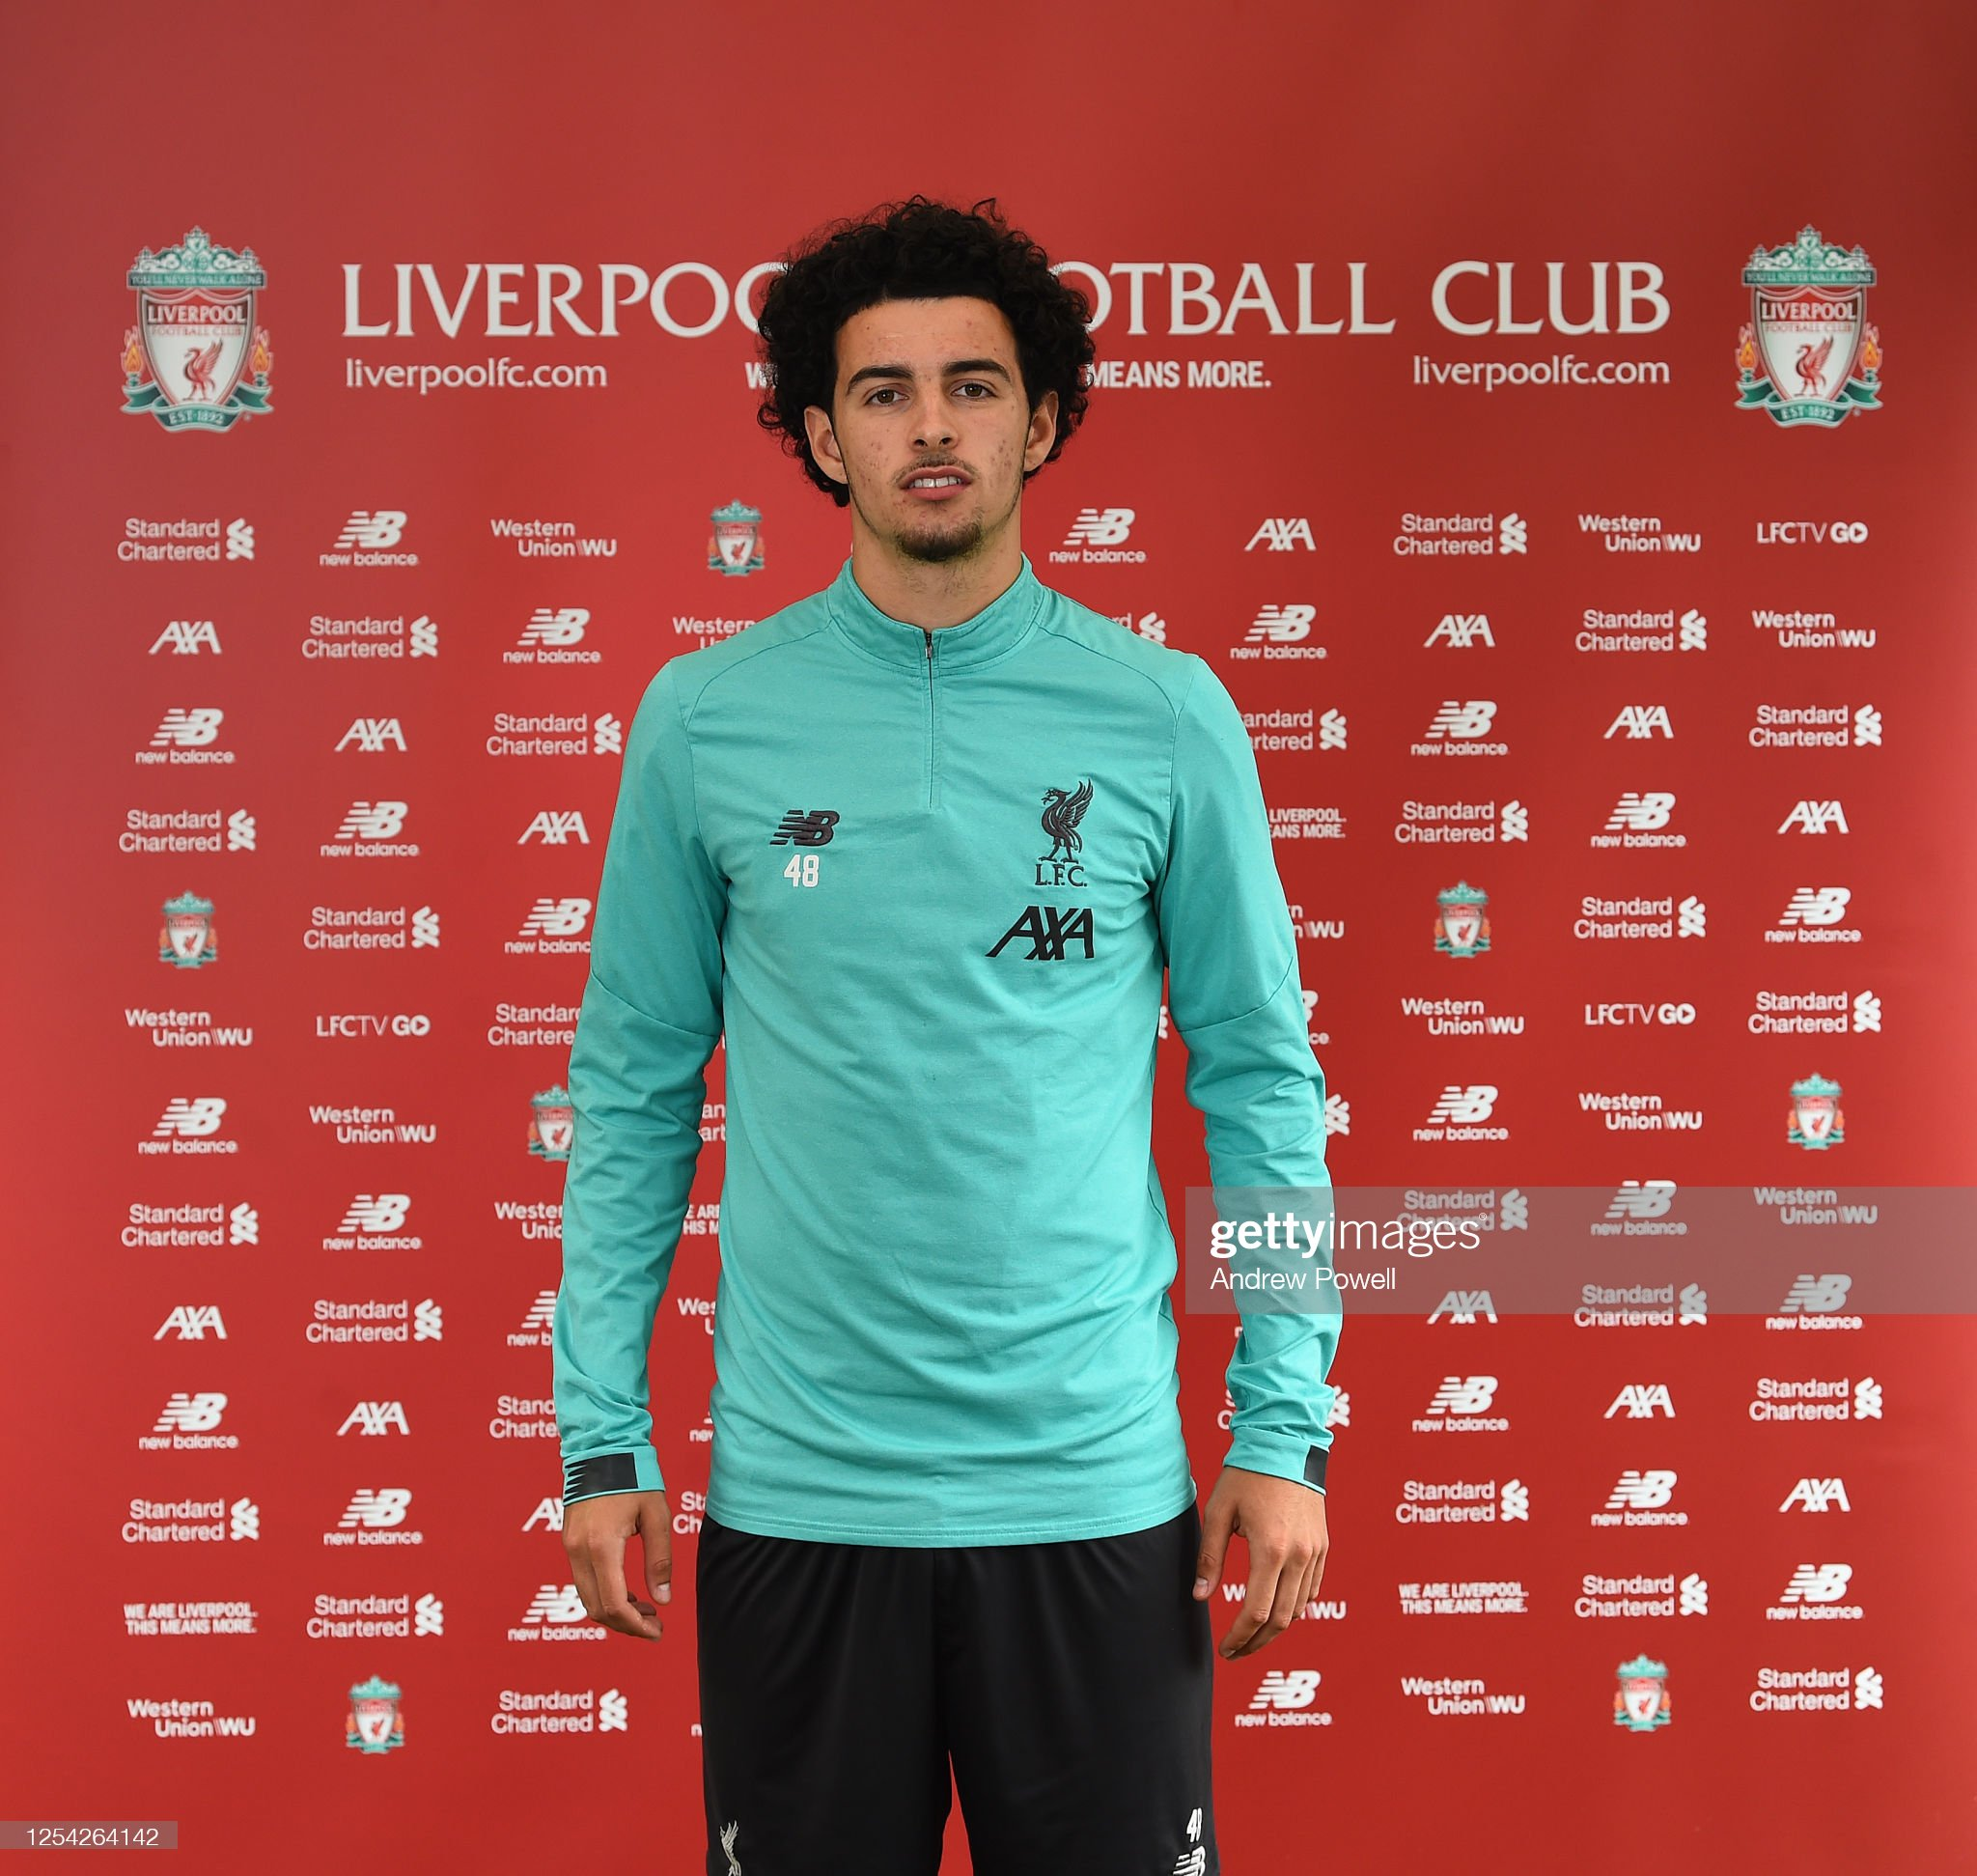 https://media.gettyimages.com/photos/curtis-jones-of-liverpool-after-signing-an-contract-extension-at-picture-id1254264142?s=2048x2048